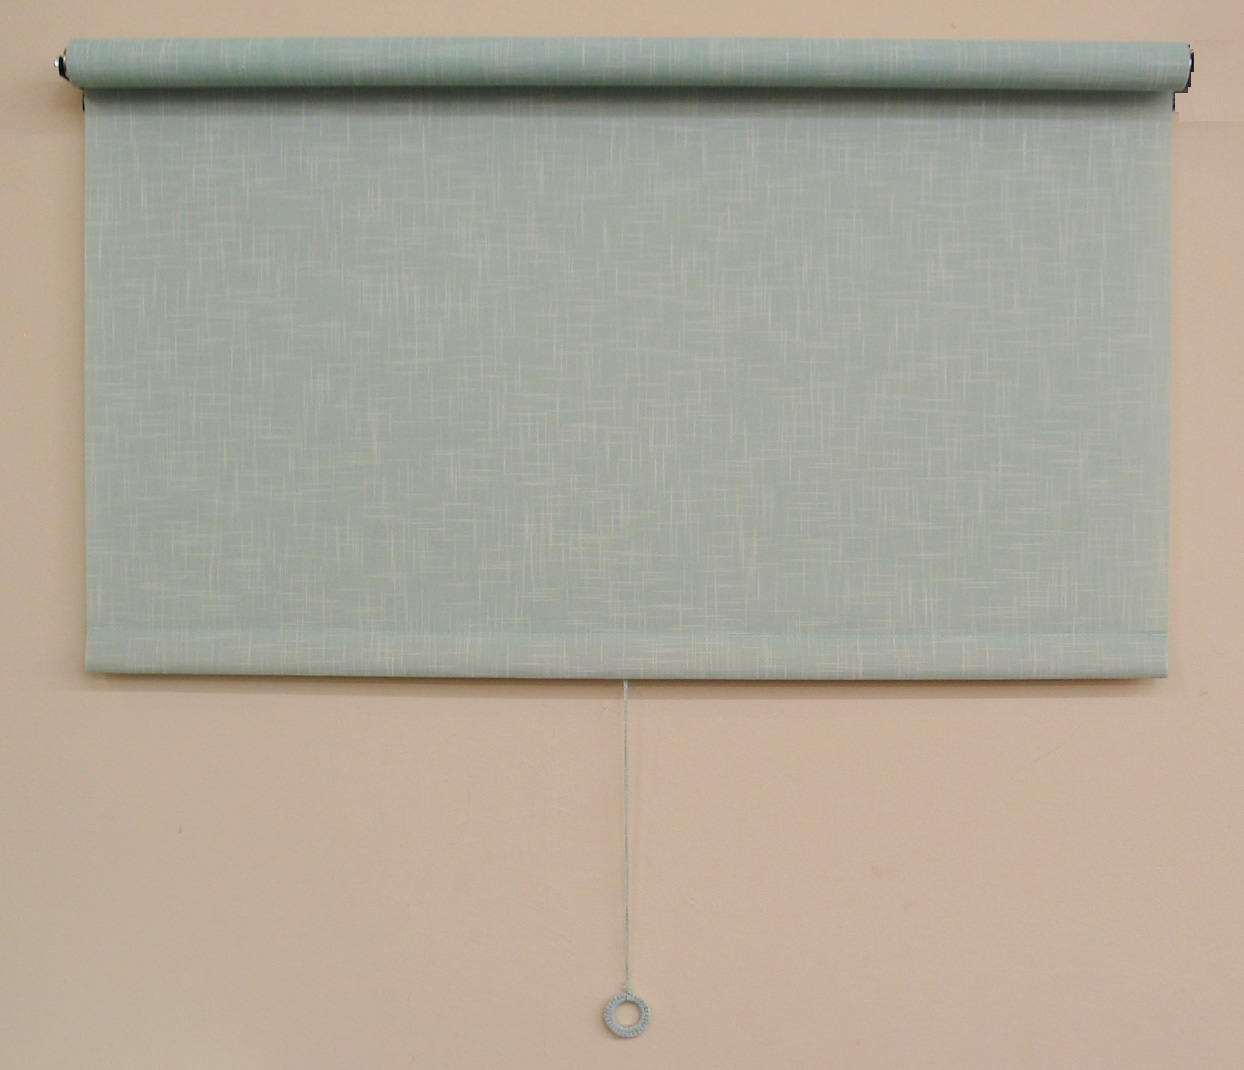 100 window shades complete blackout window shades cabinet h